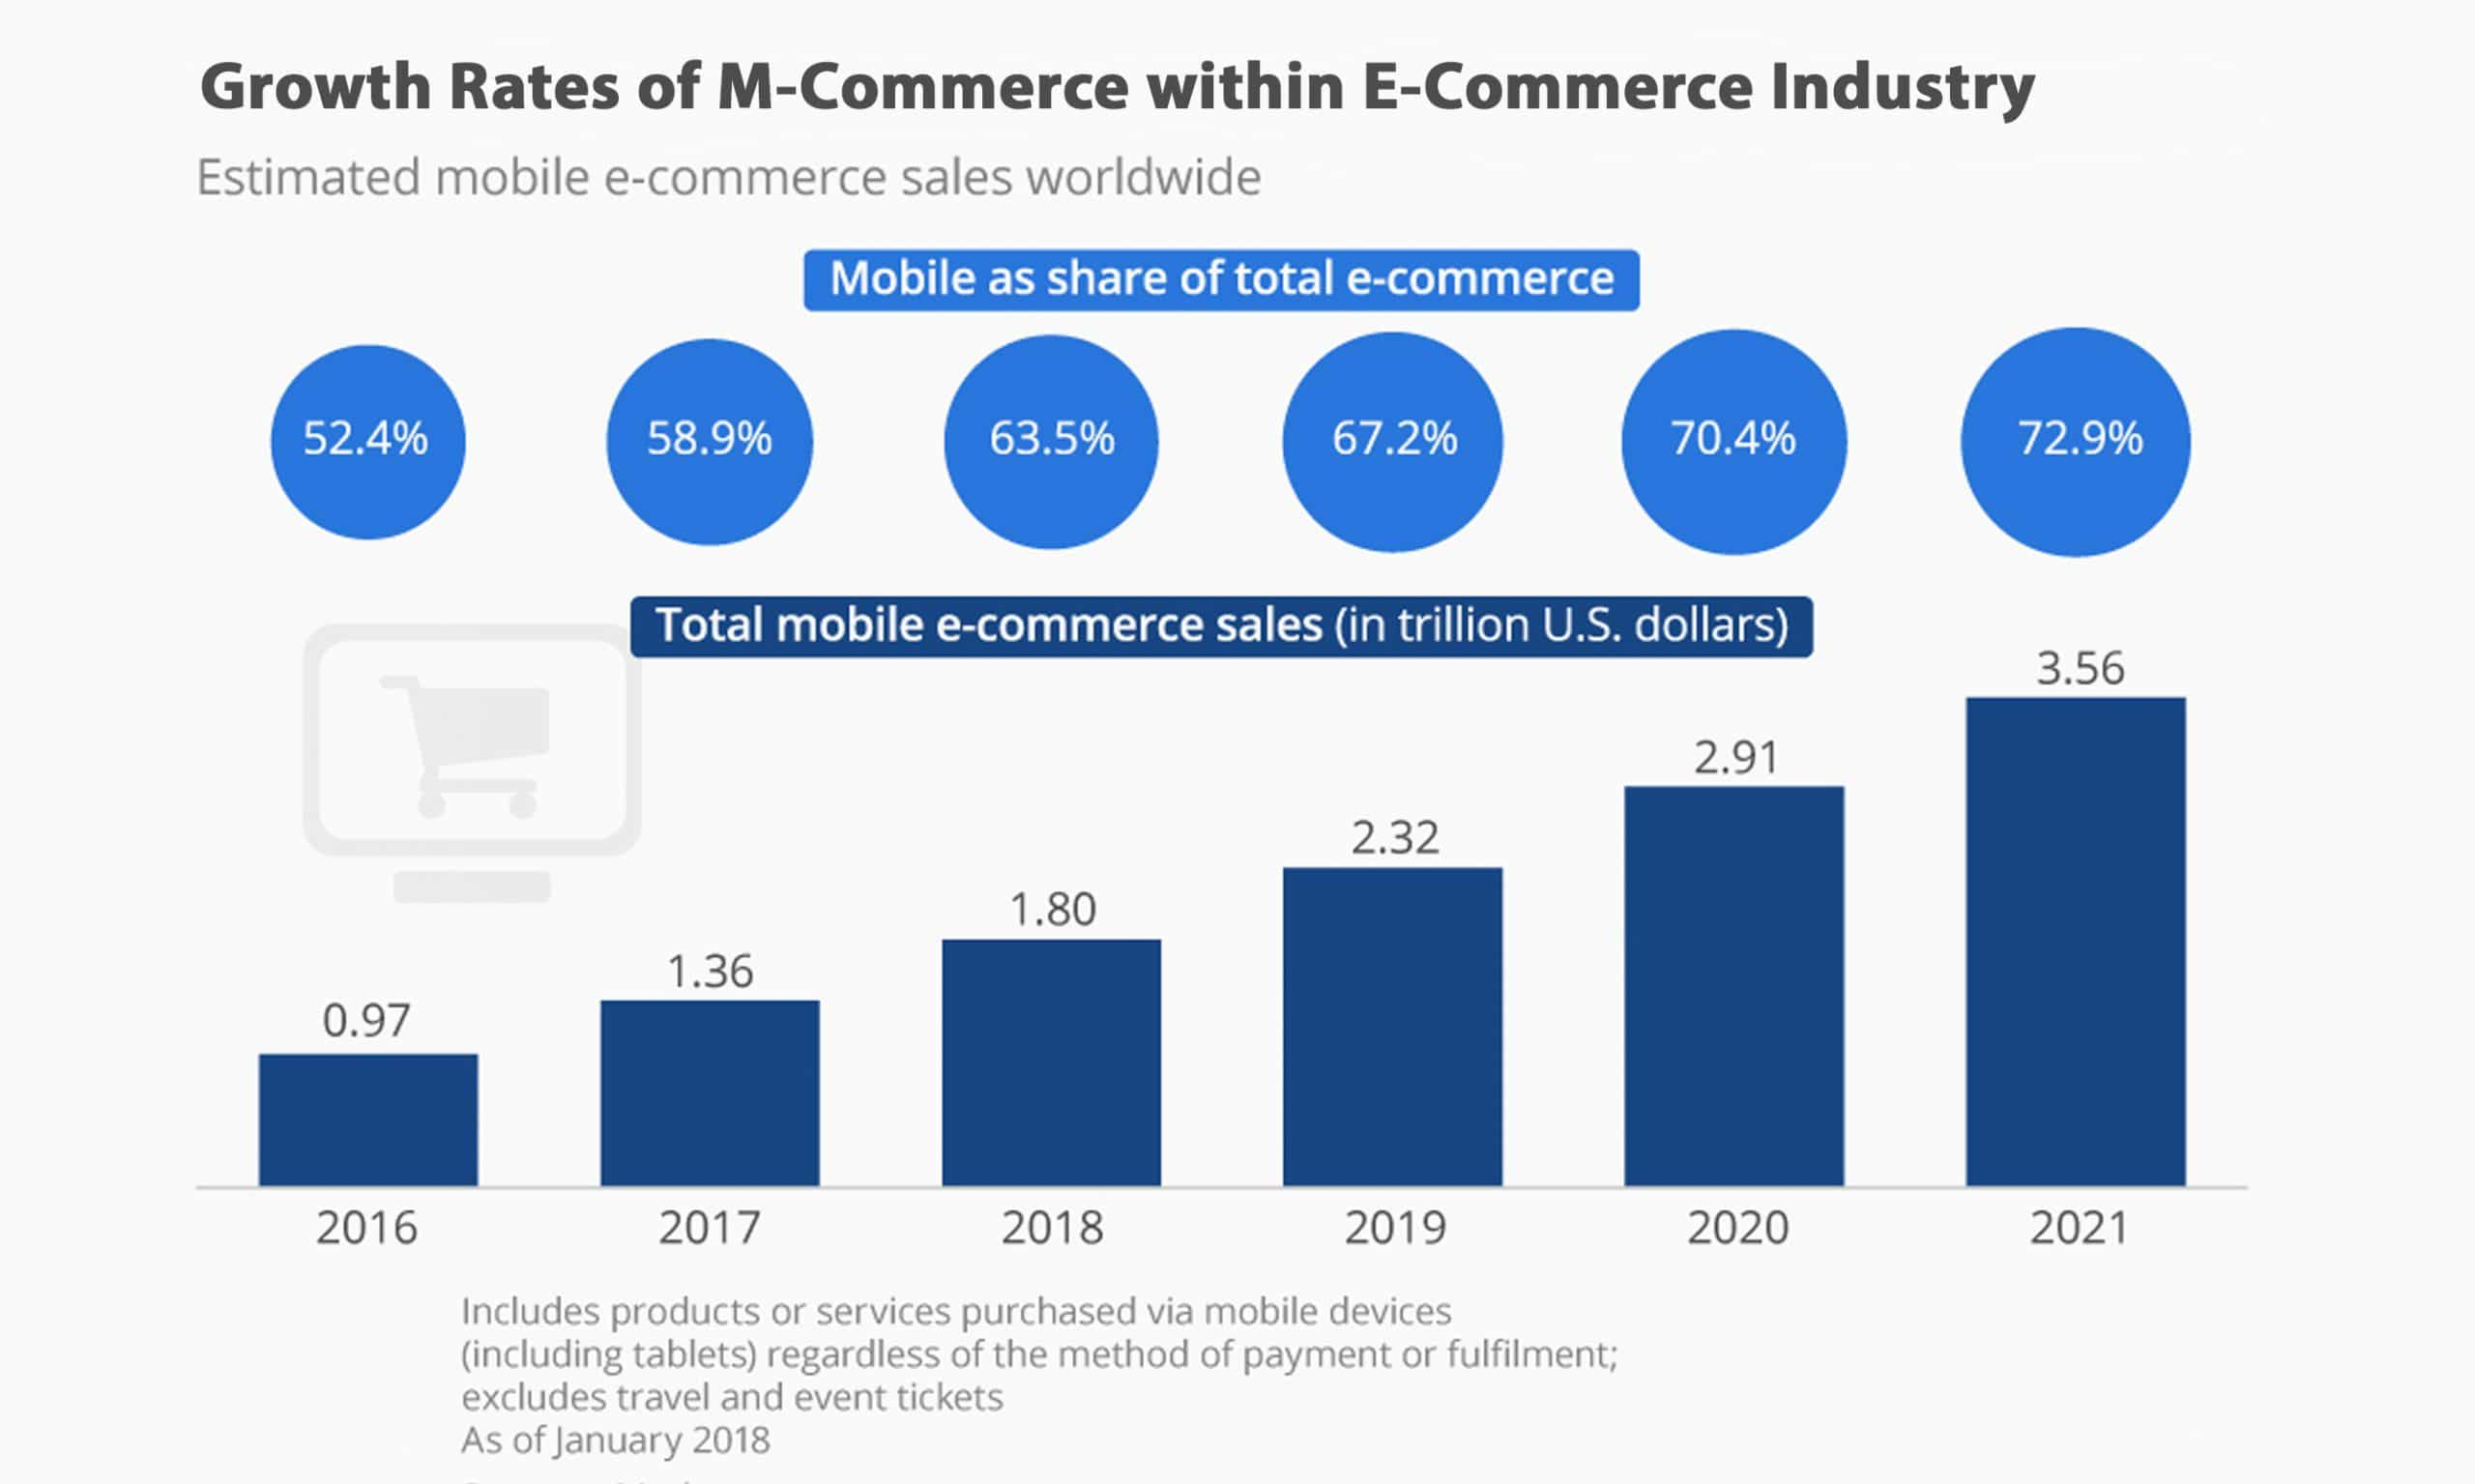 Growth Rates of M-Commerce within E-Commerce Industry